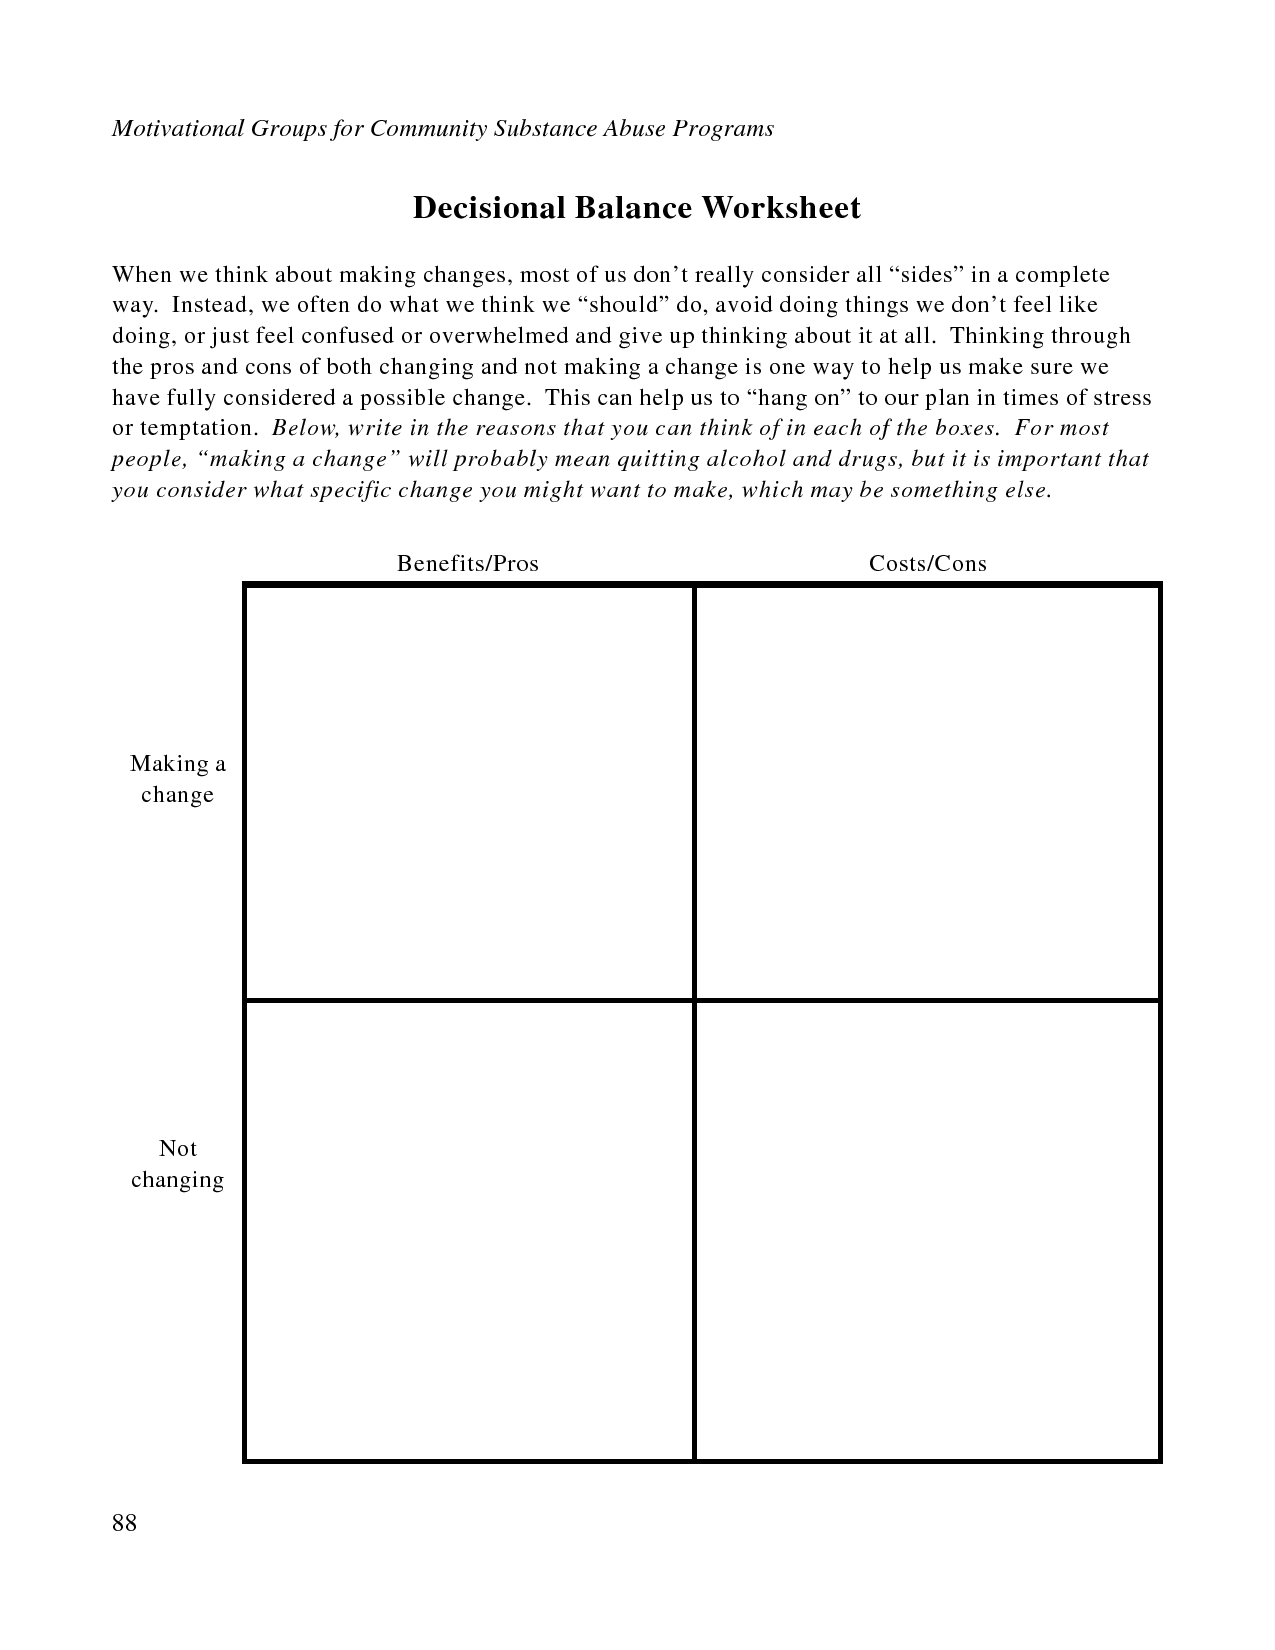 Worksheets Genogram Worksheet free printable dbt worksheets decisional balance worksheet pdf pdf